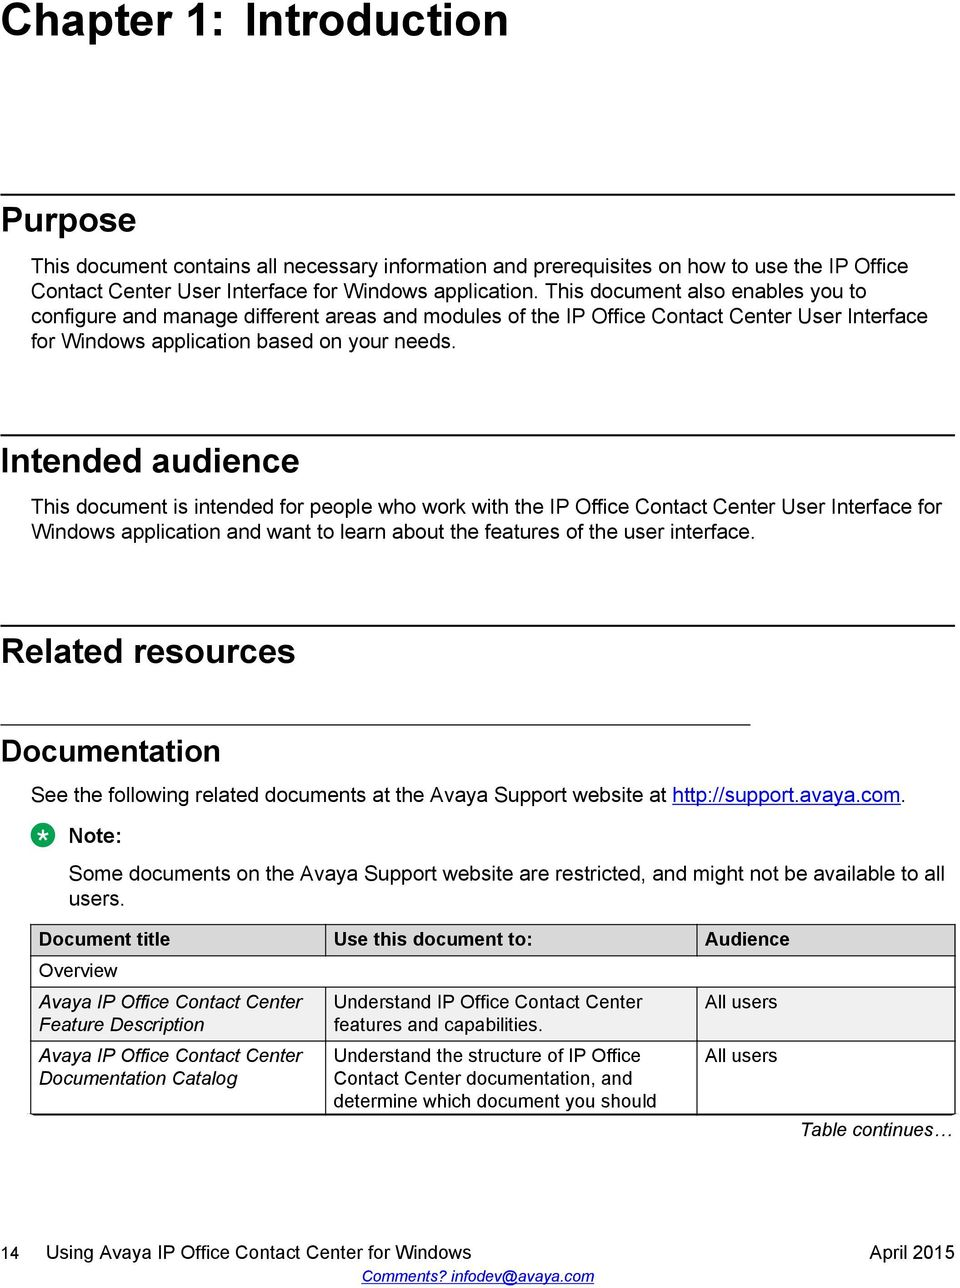 Intended audience This document is intended for people who work with the IP Office Contact Center User Interface for Windows application and want to learn about the features of the user interface.